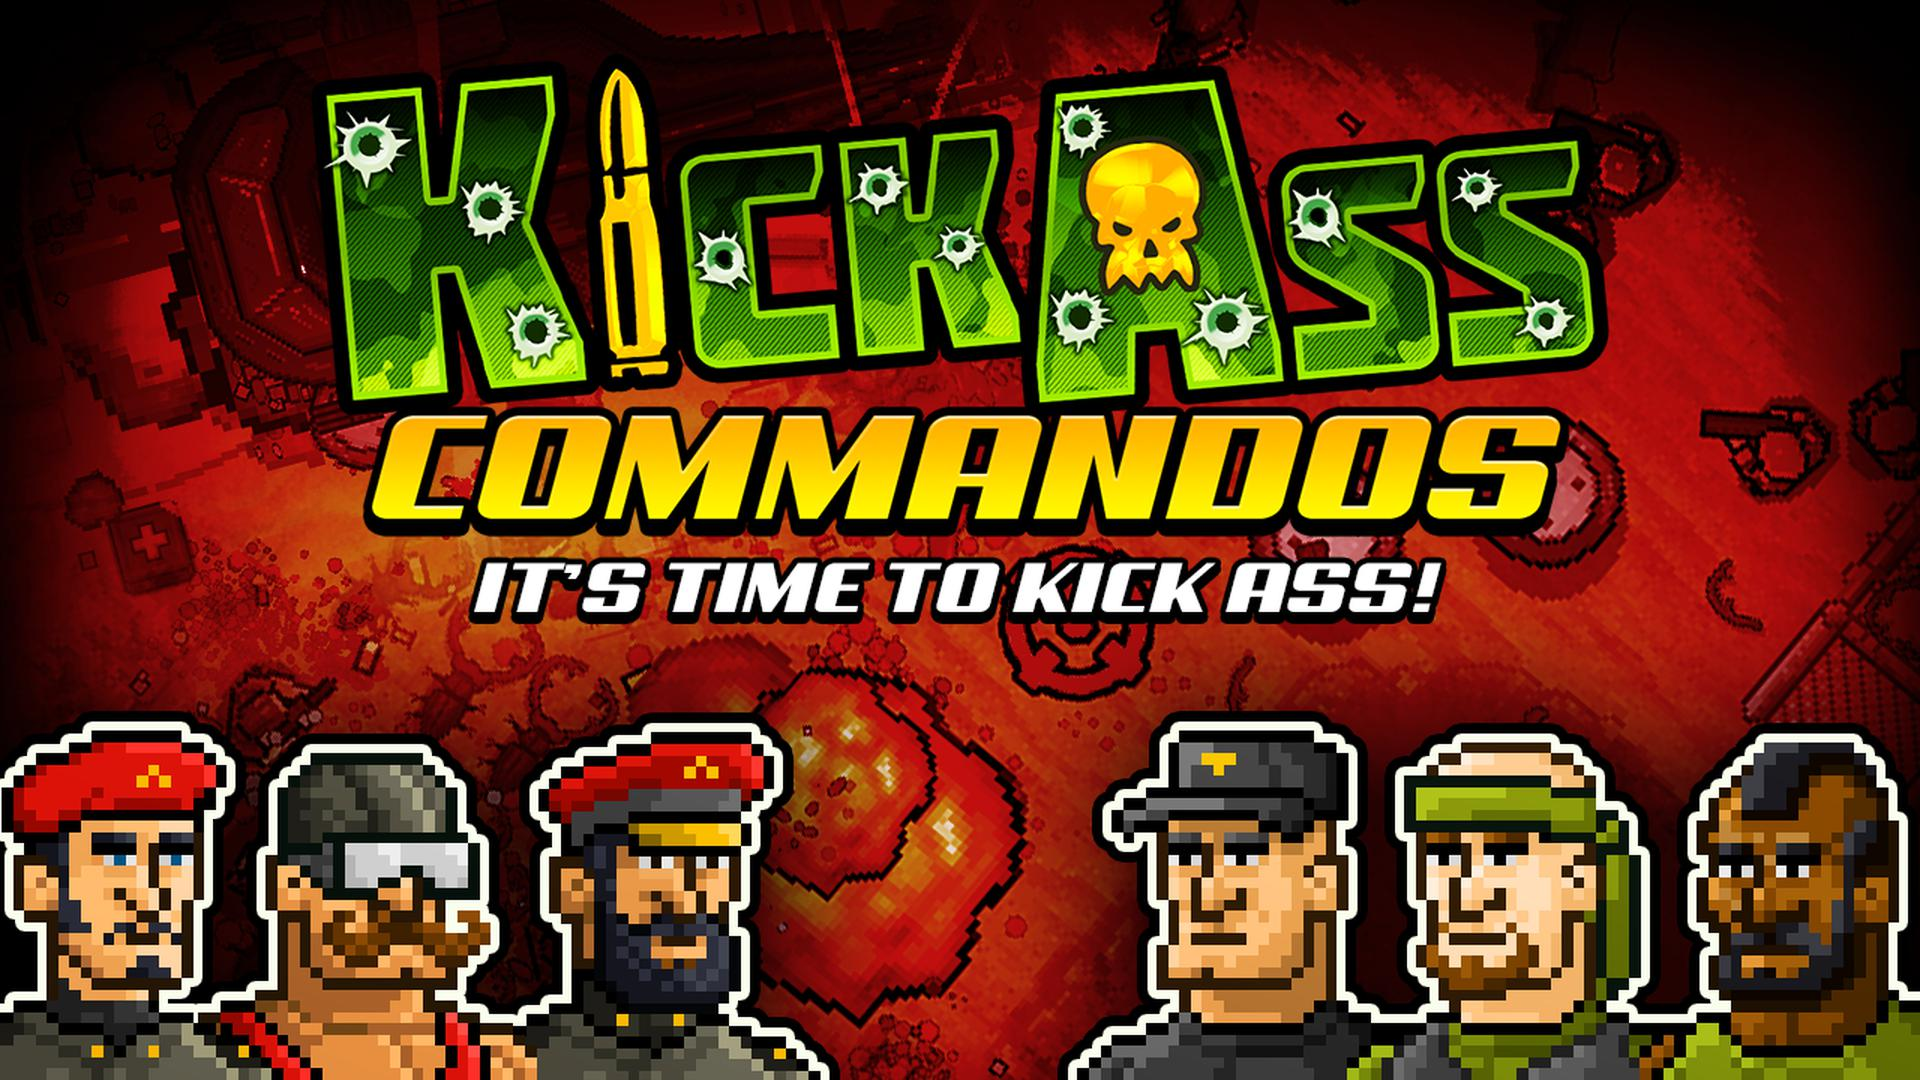 Kick Ass Commandos Video